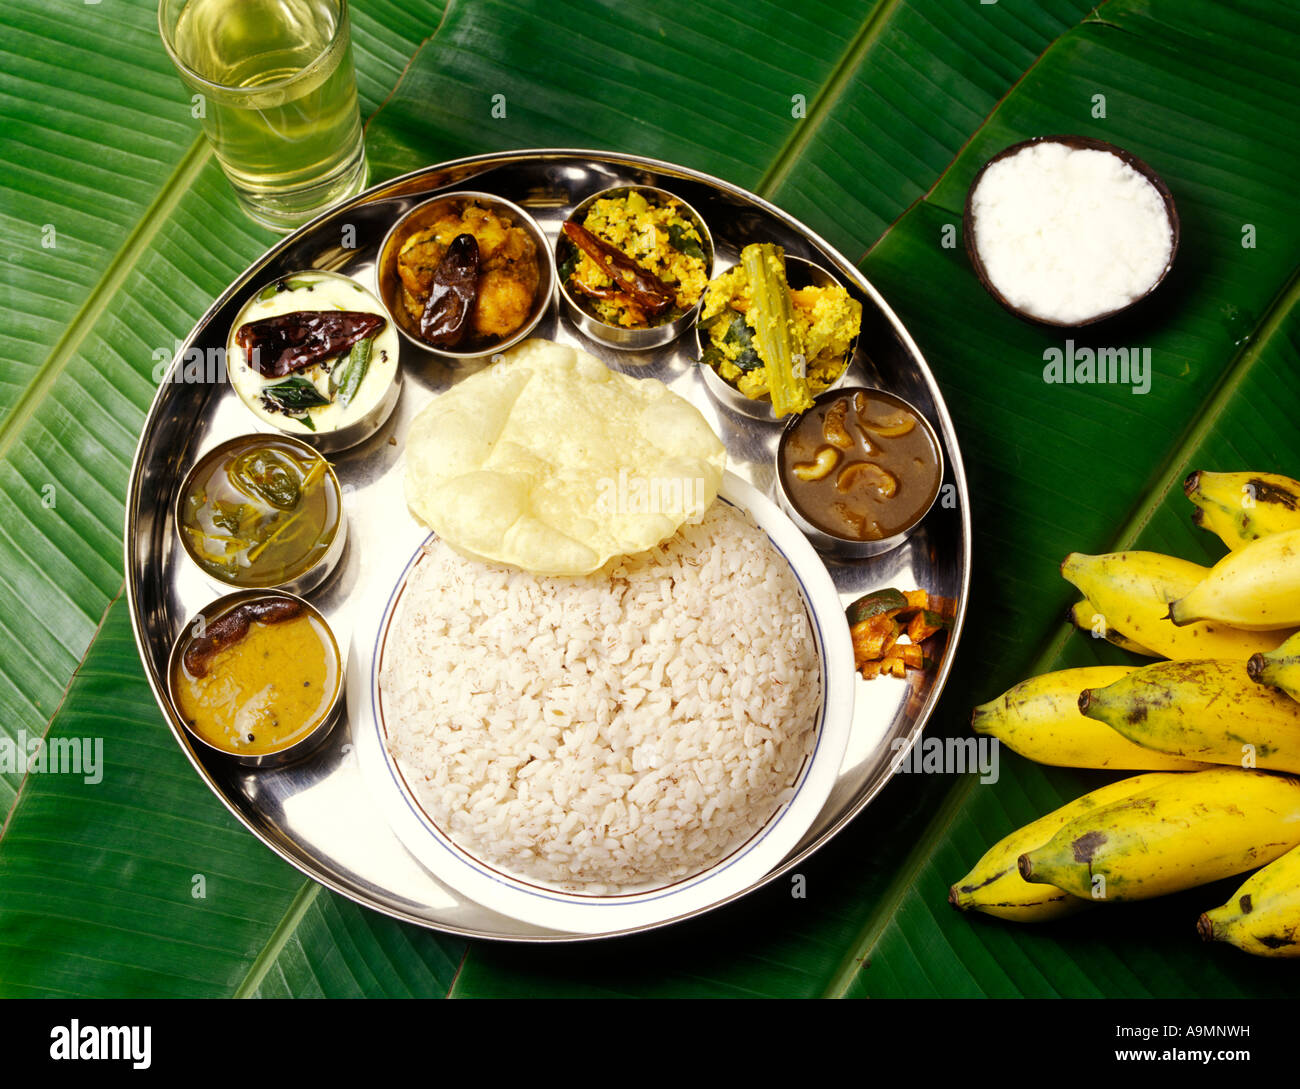 Kerala Food Thali Stock Photos & Kerala Food Thali Stock